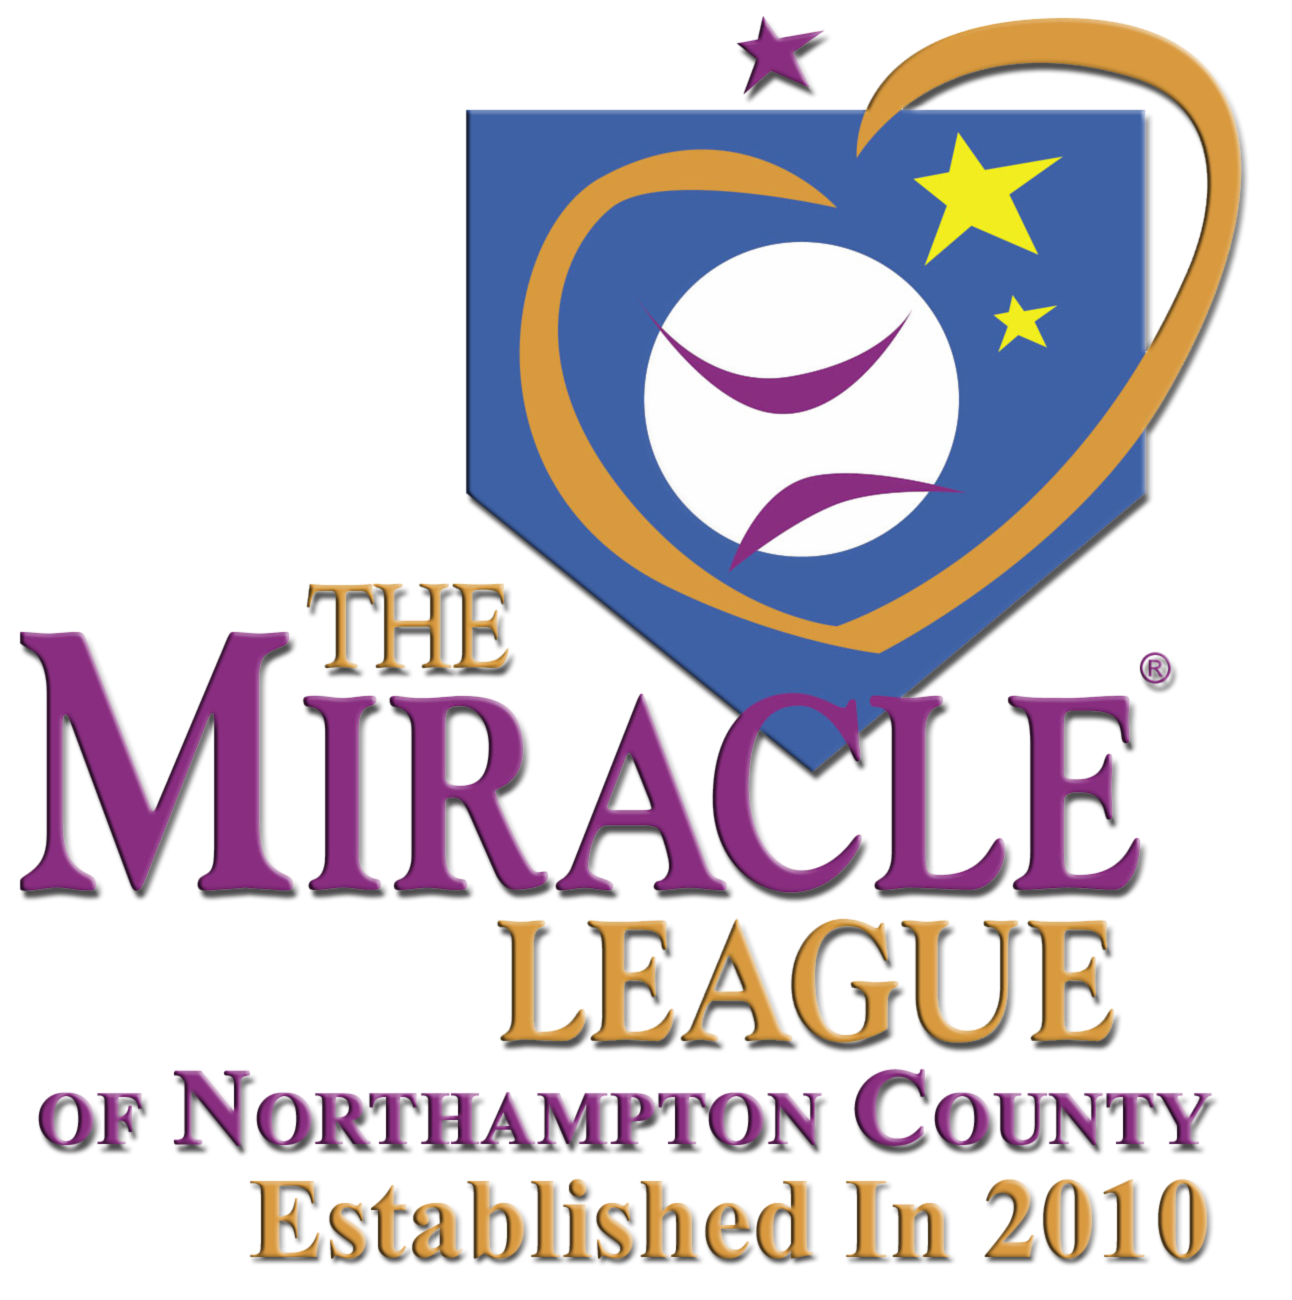 Miracle League of Northampton County